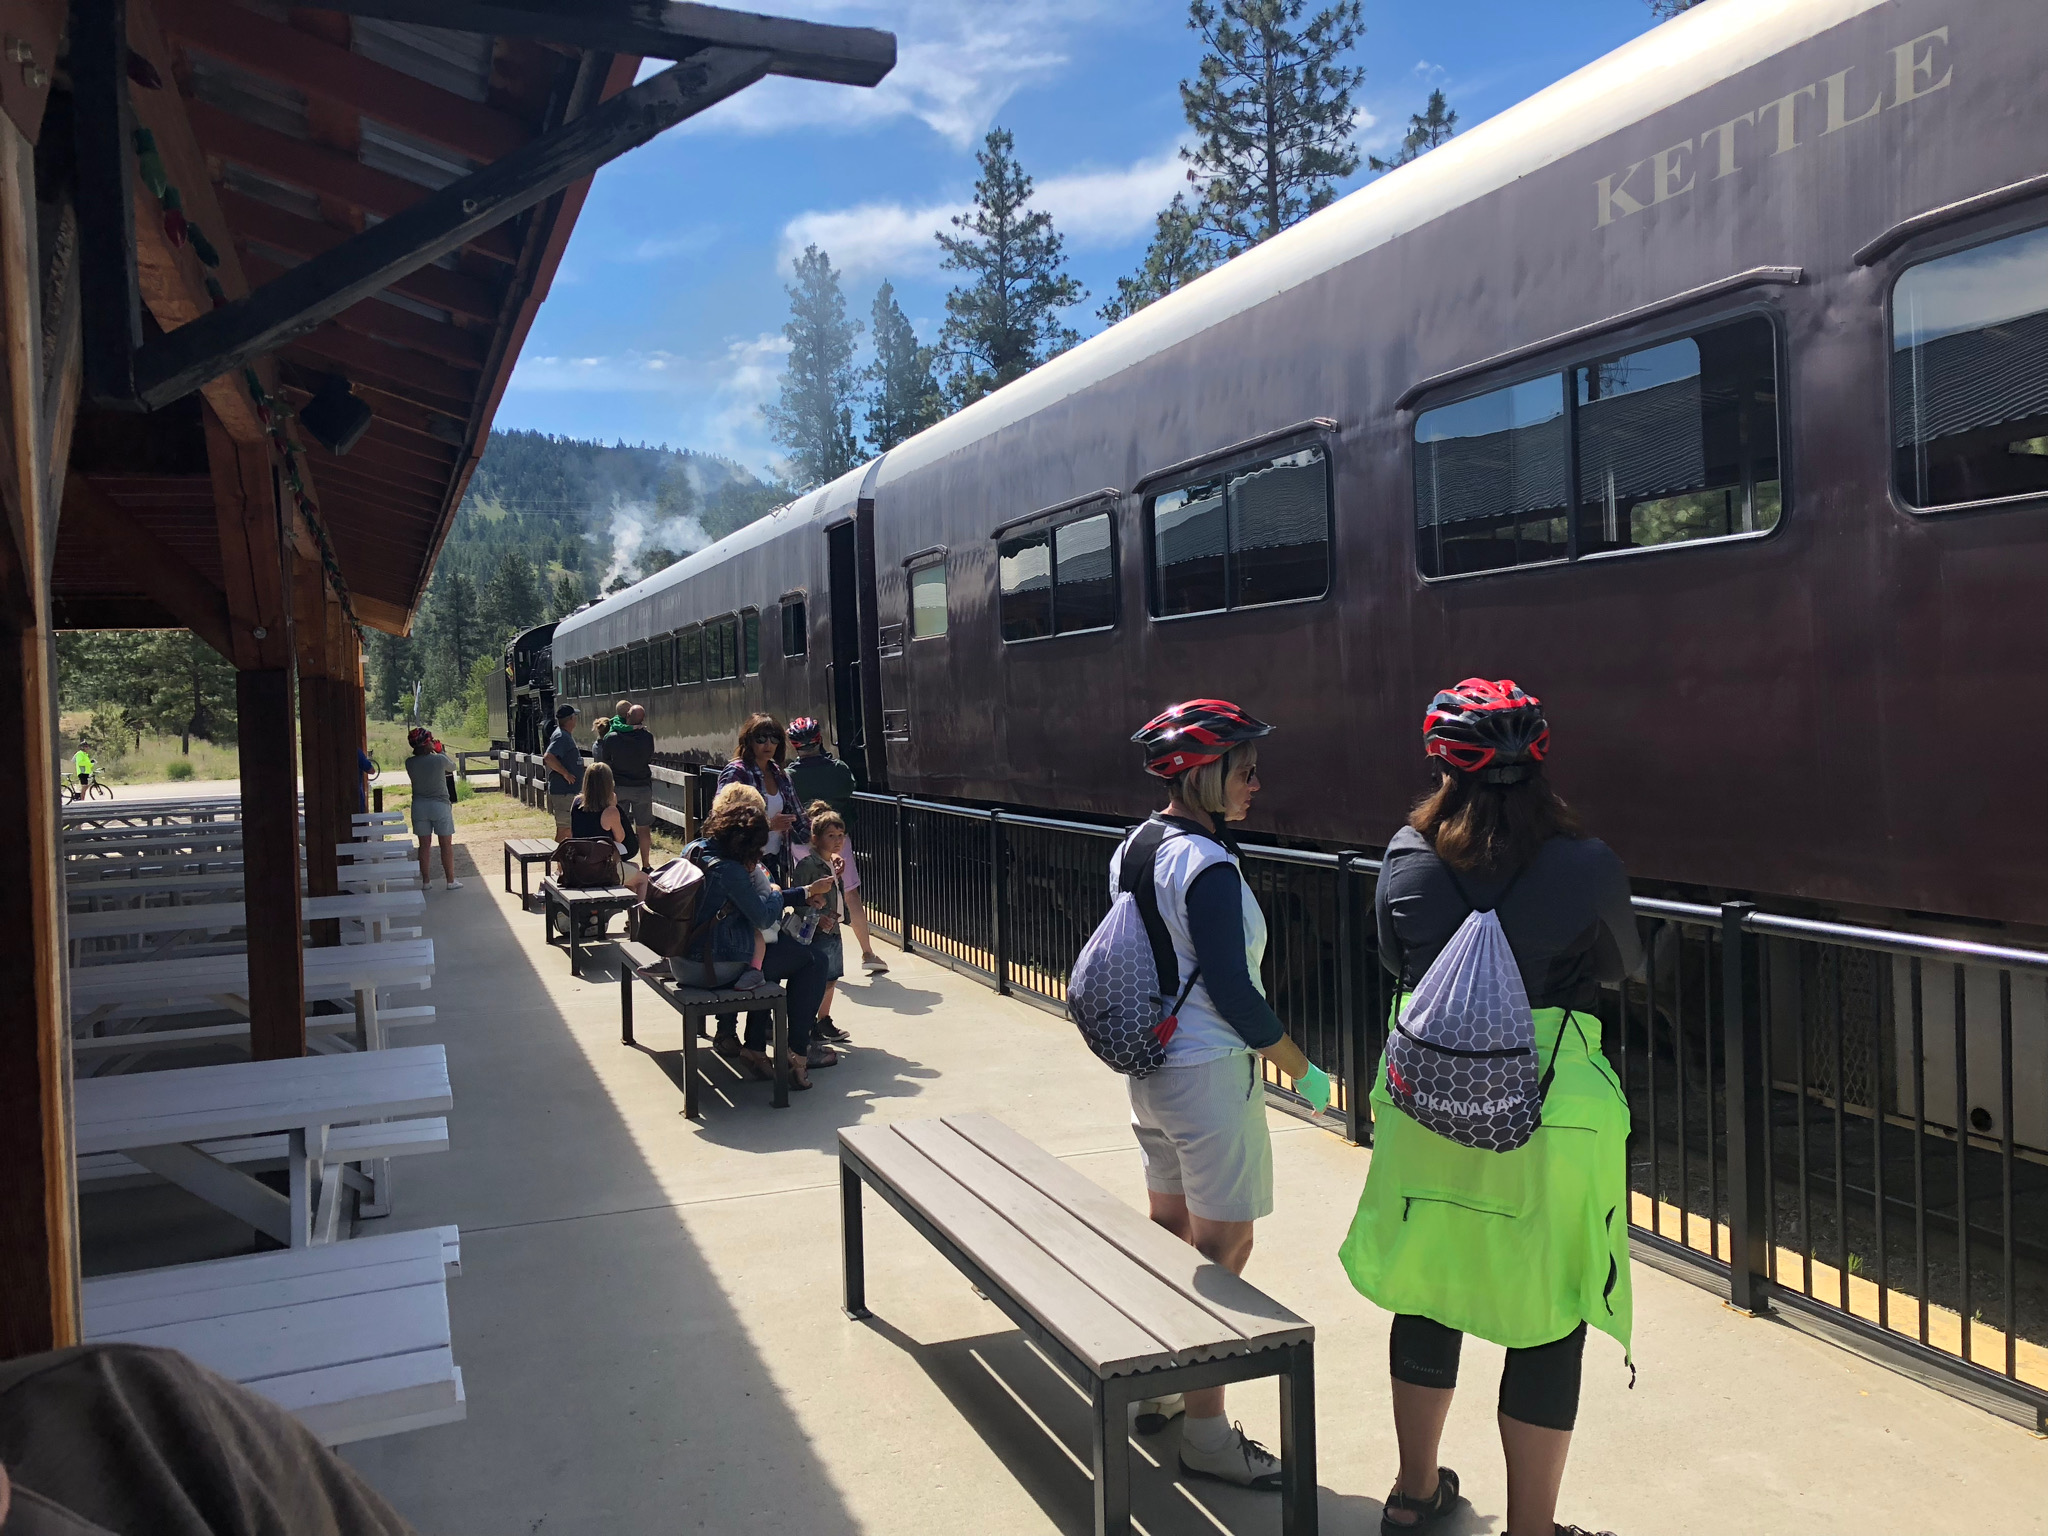 All aboard the Kettle Valley Steam Train